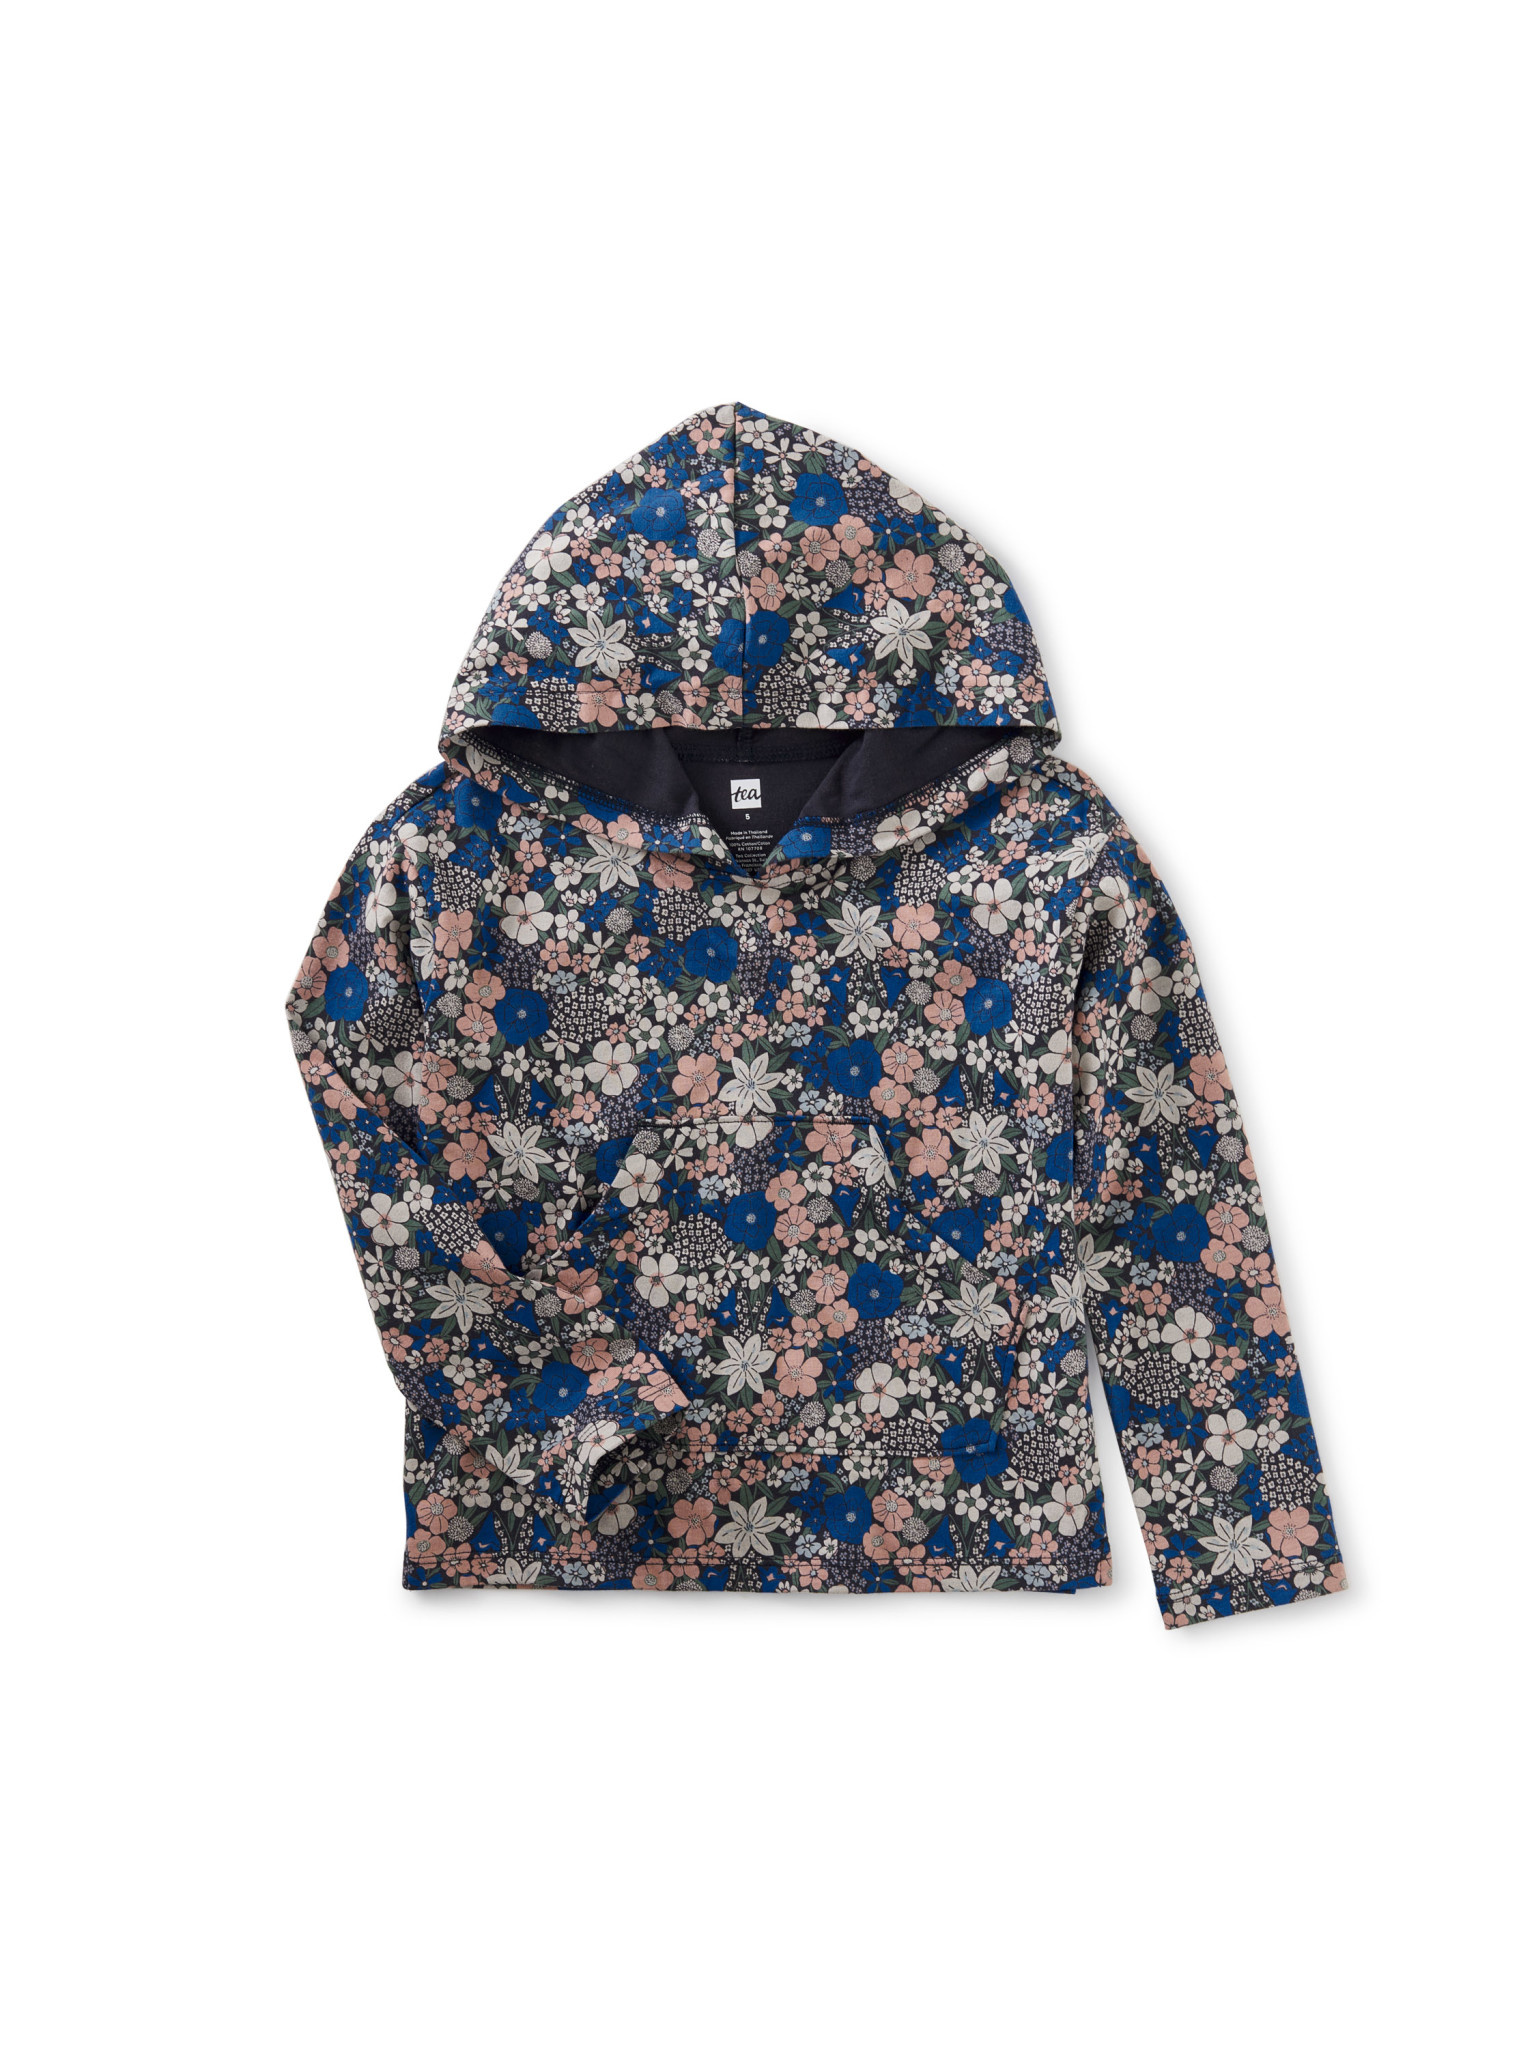 Tea Collection Front Pocket Hooded Top - Swedish